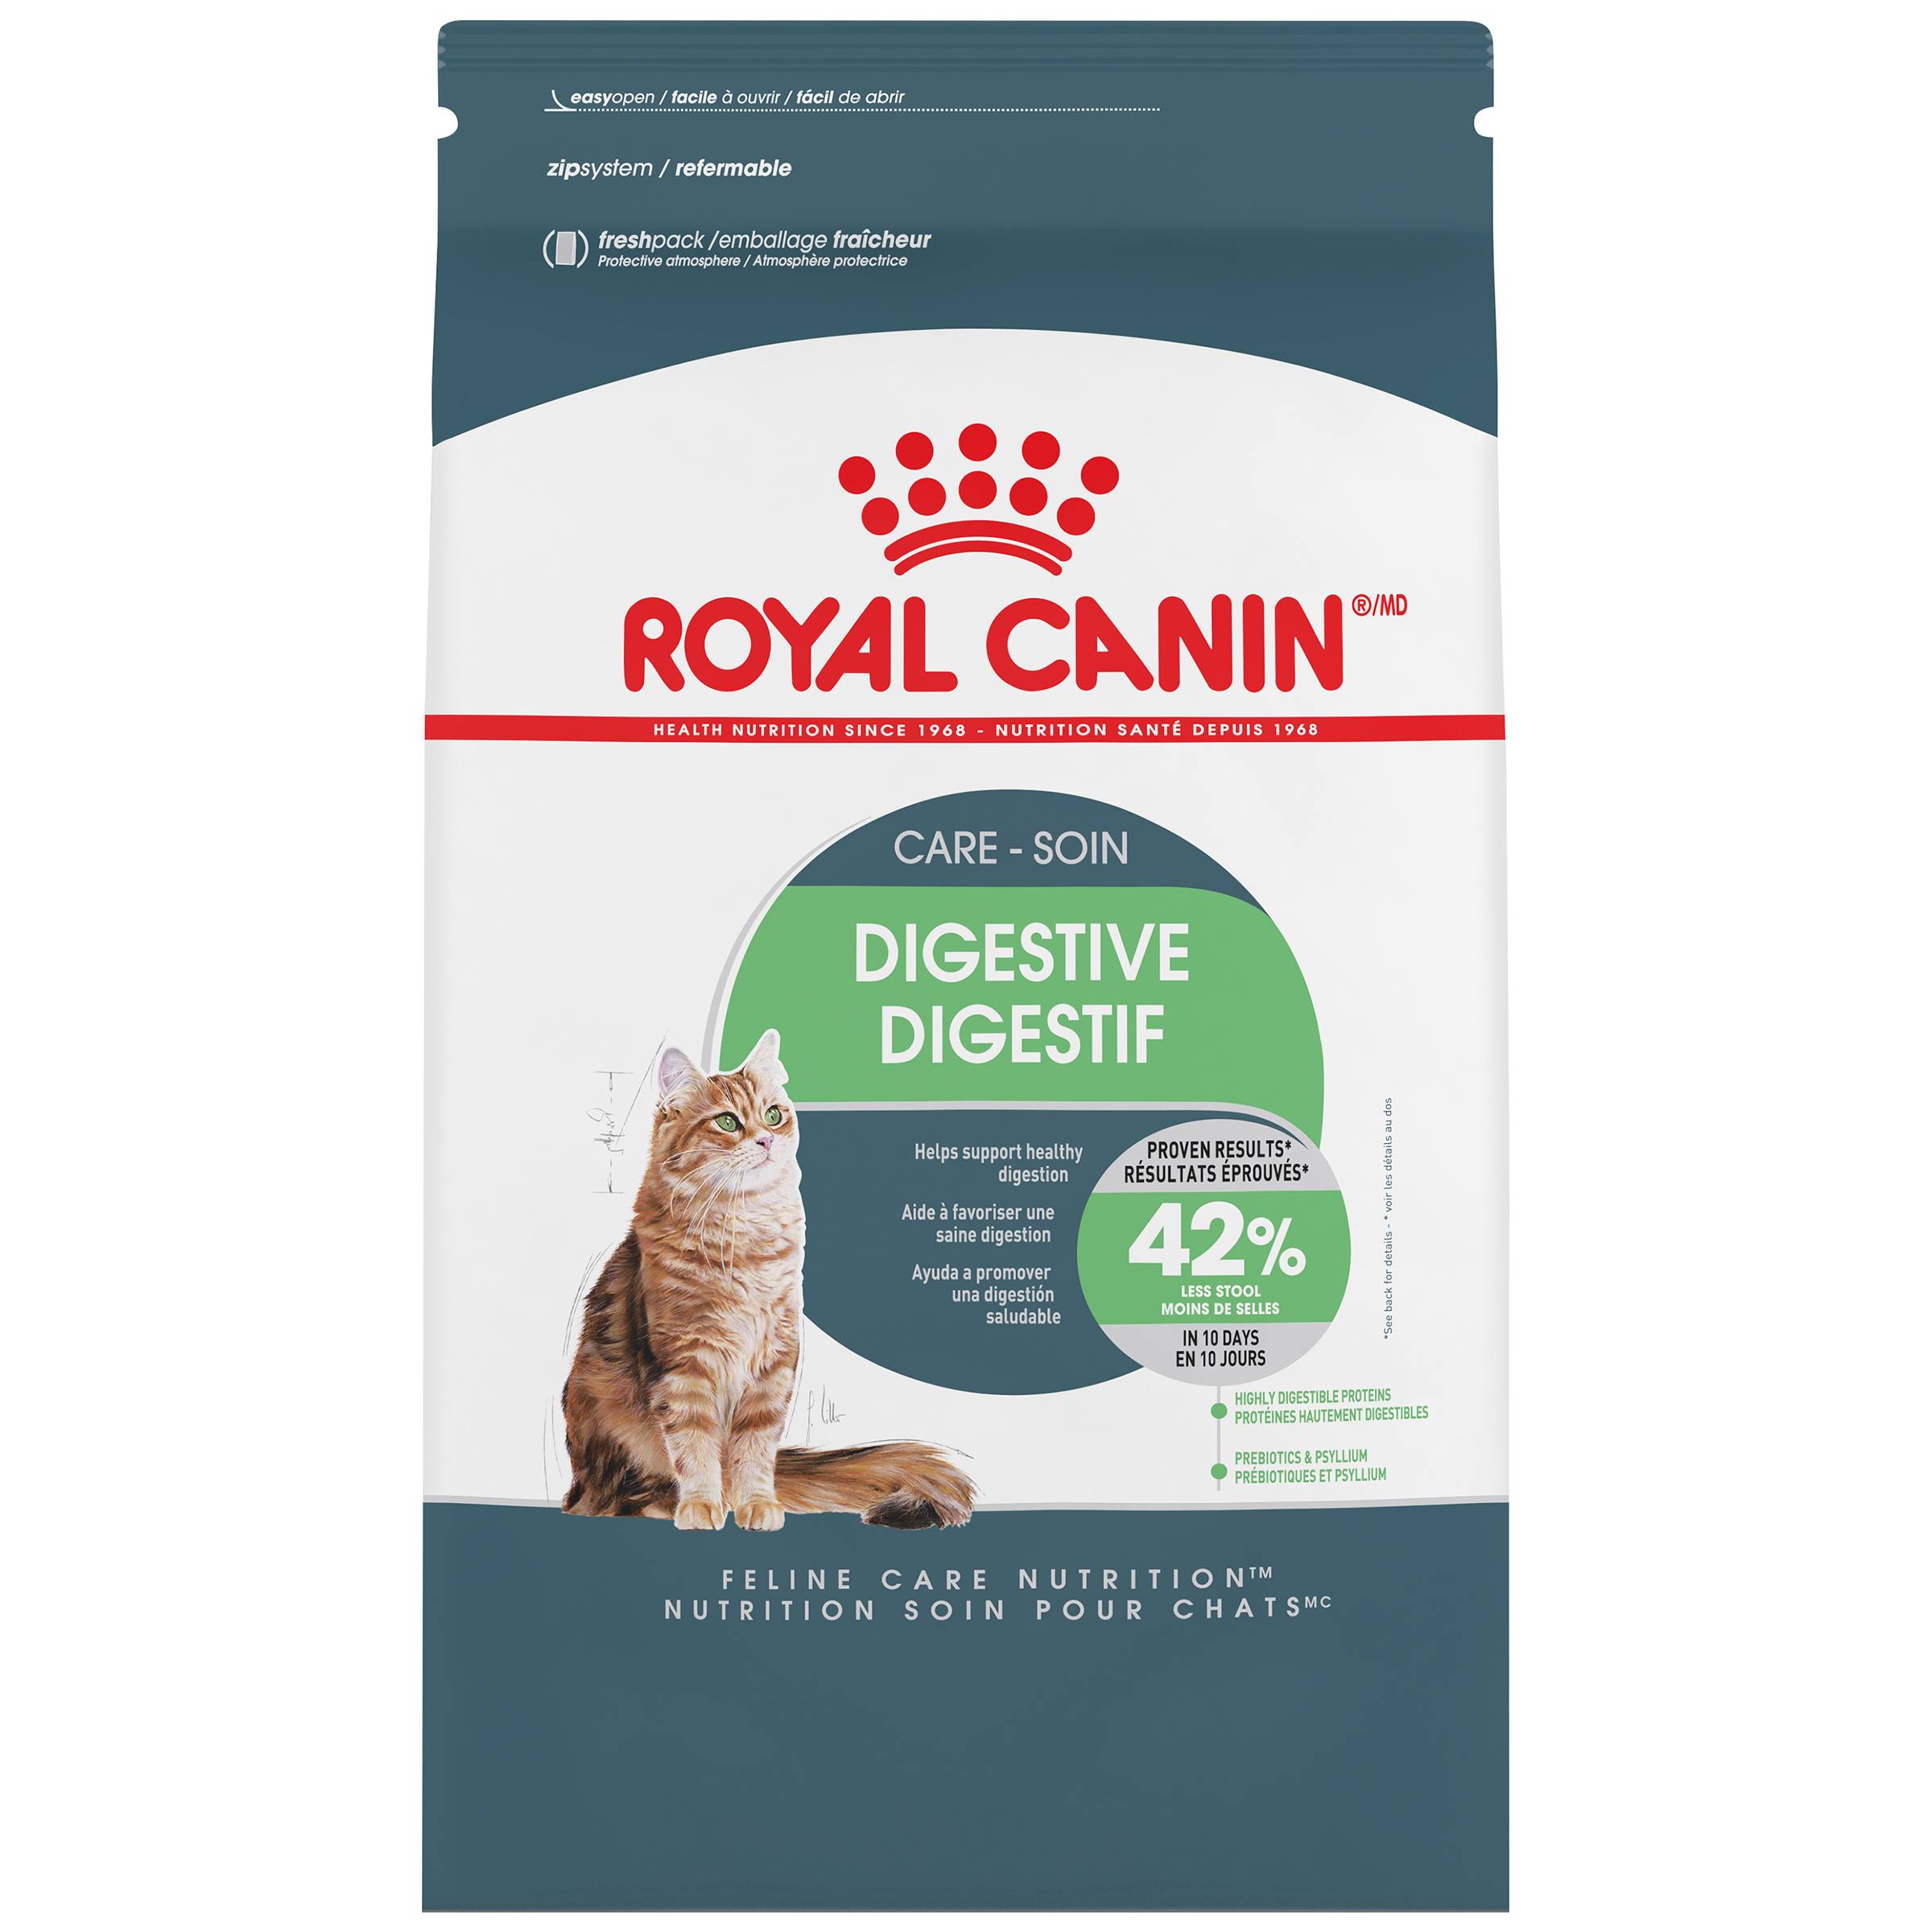 Royal Canin Feline Care Nutrition Digestive Care Adult Dry Cat Food Image